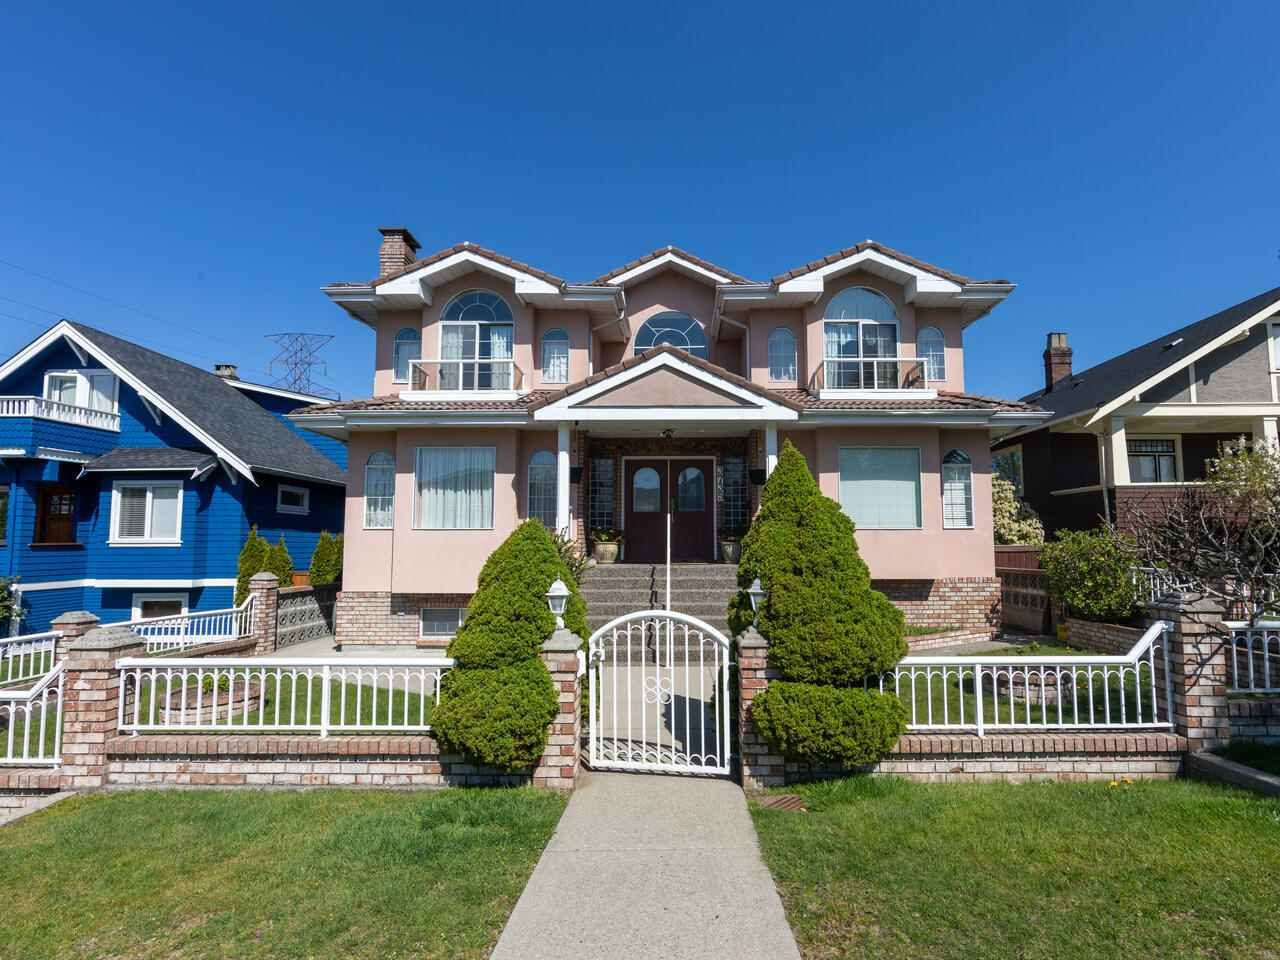 Main Photo: 3735 TRIUMPH Street in Burnaby: Vancouver Heights House for sale (Burnaby North)  : MLS®# R2570394